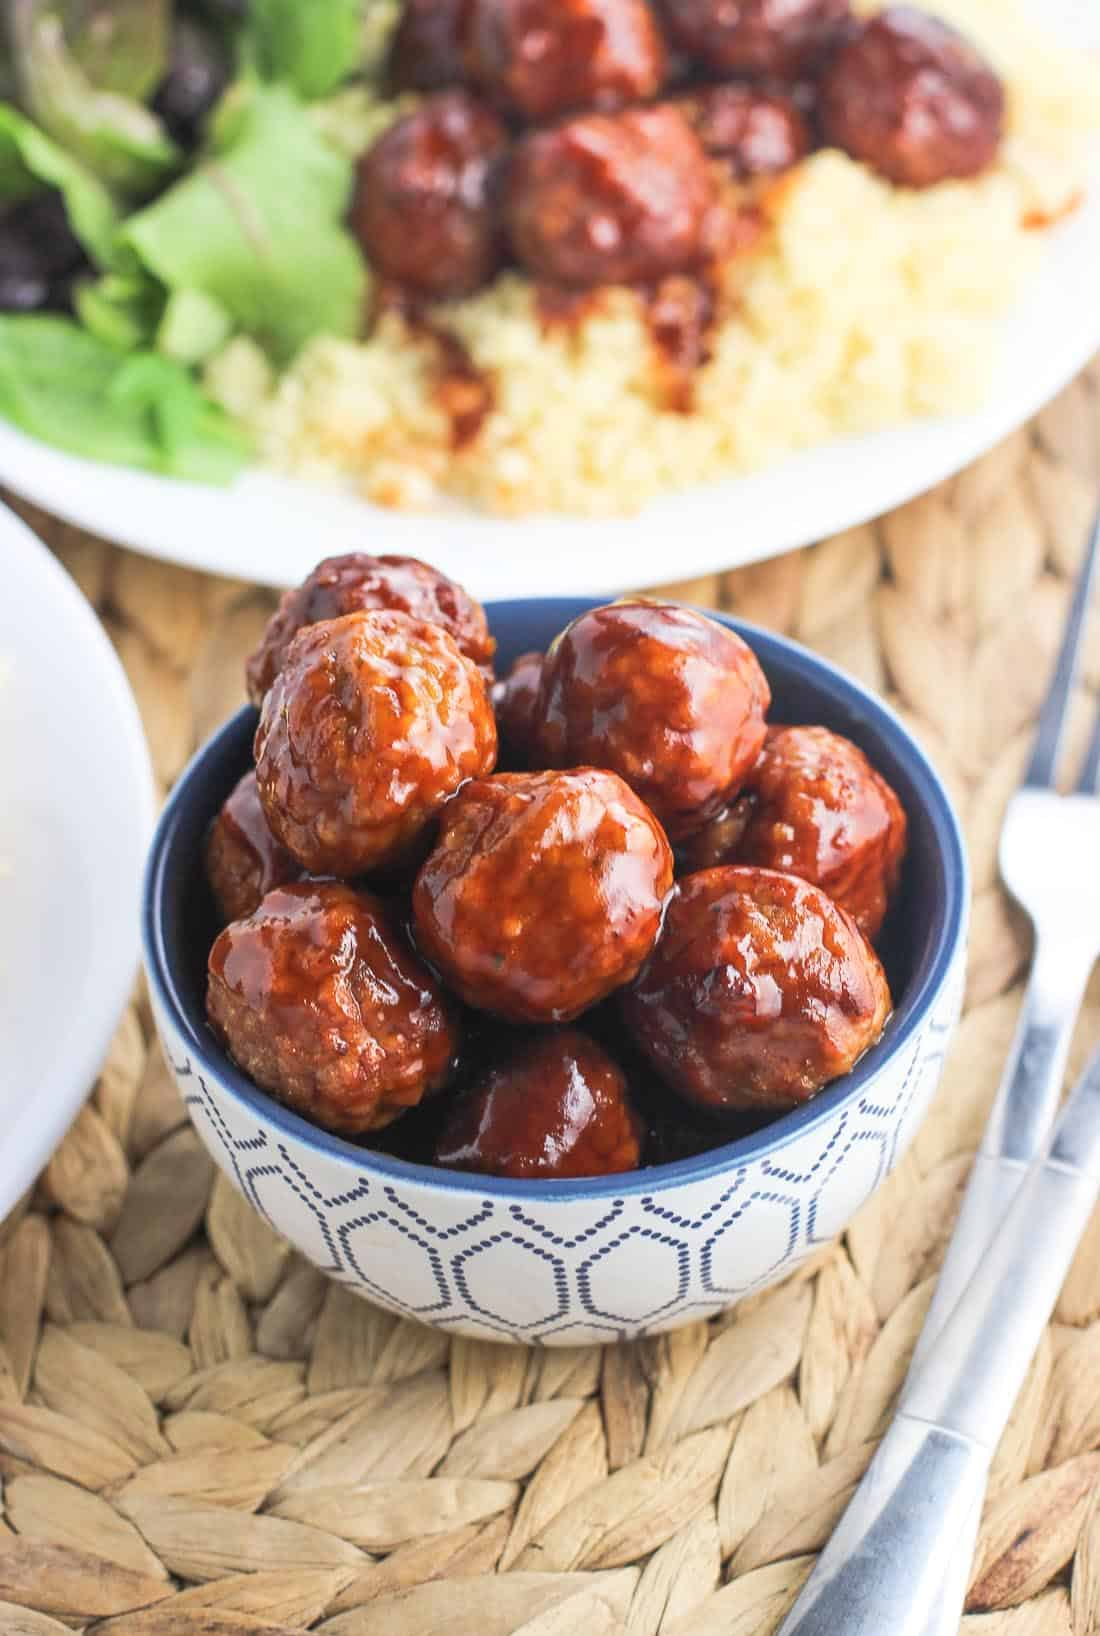 Sweet and Spicy Slow Cooker Meatballs are an easy appetizer or main dish made from pantry and fridge staples. Simple and quick prep!